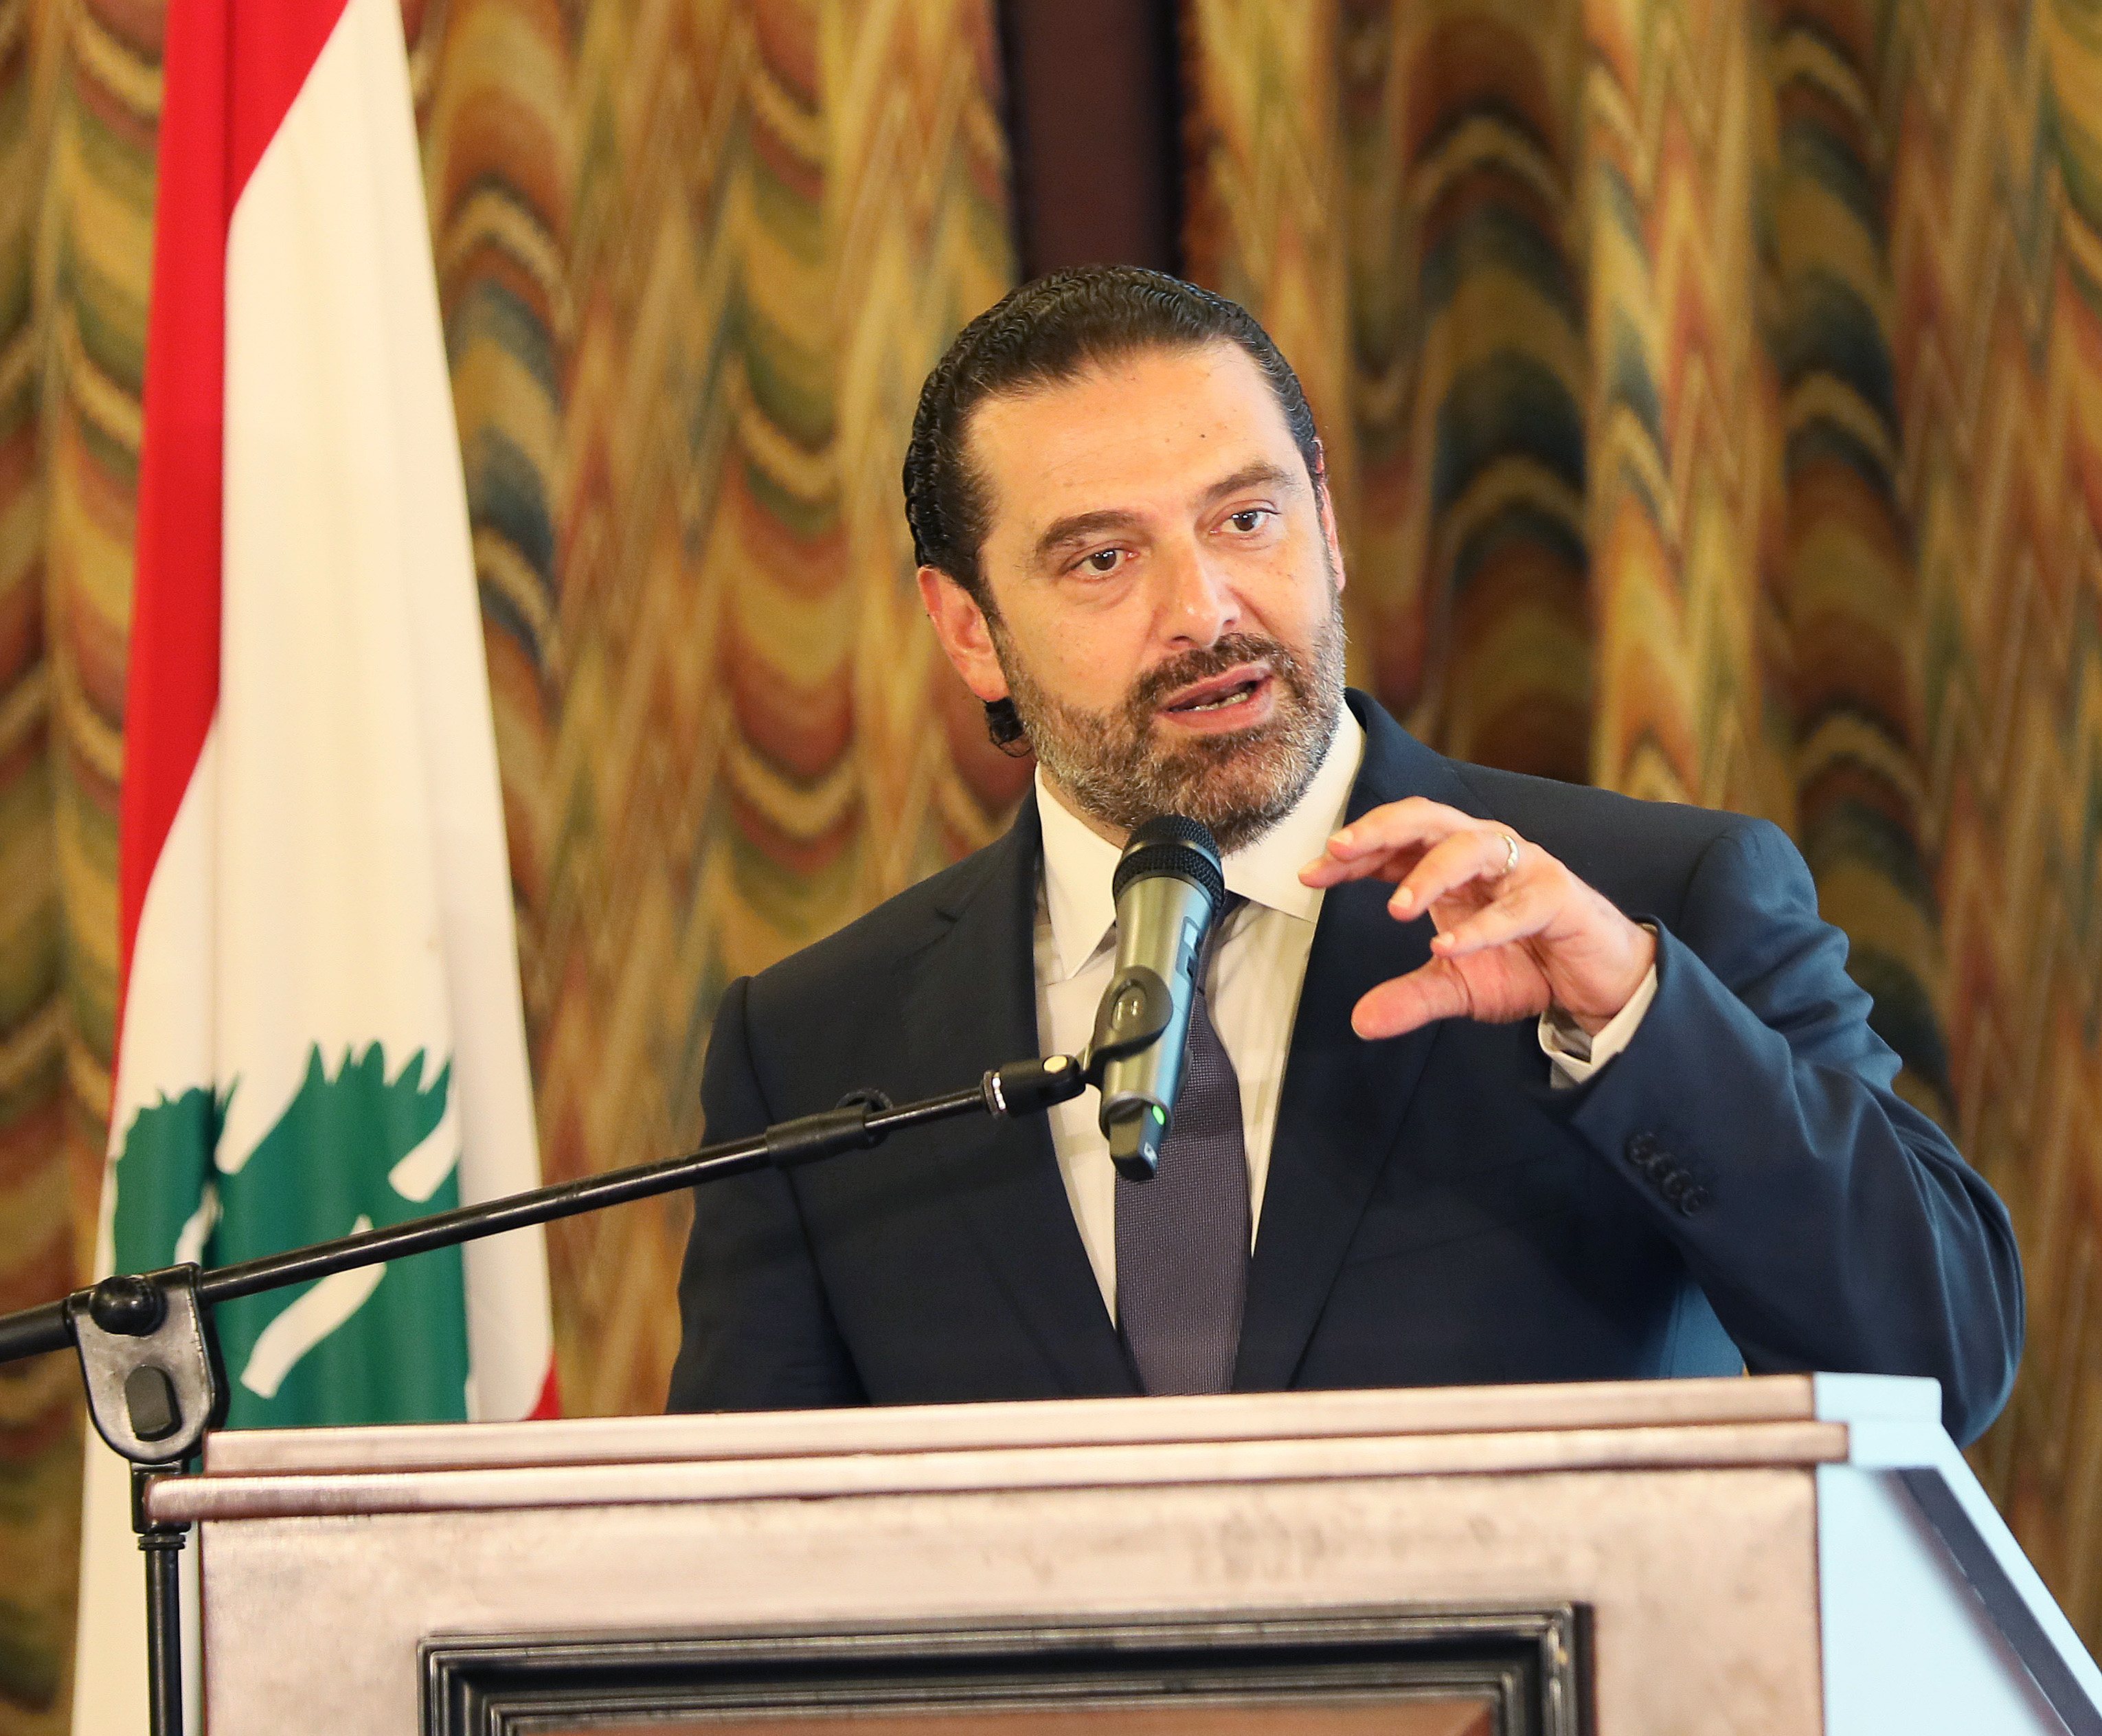 Pr Minister Saad Hariri Attends March Conference at the Grand Serail 2